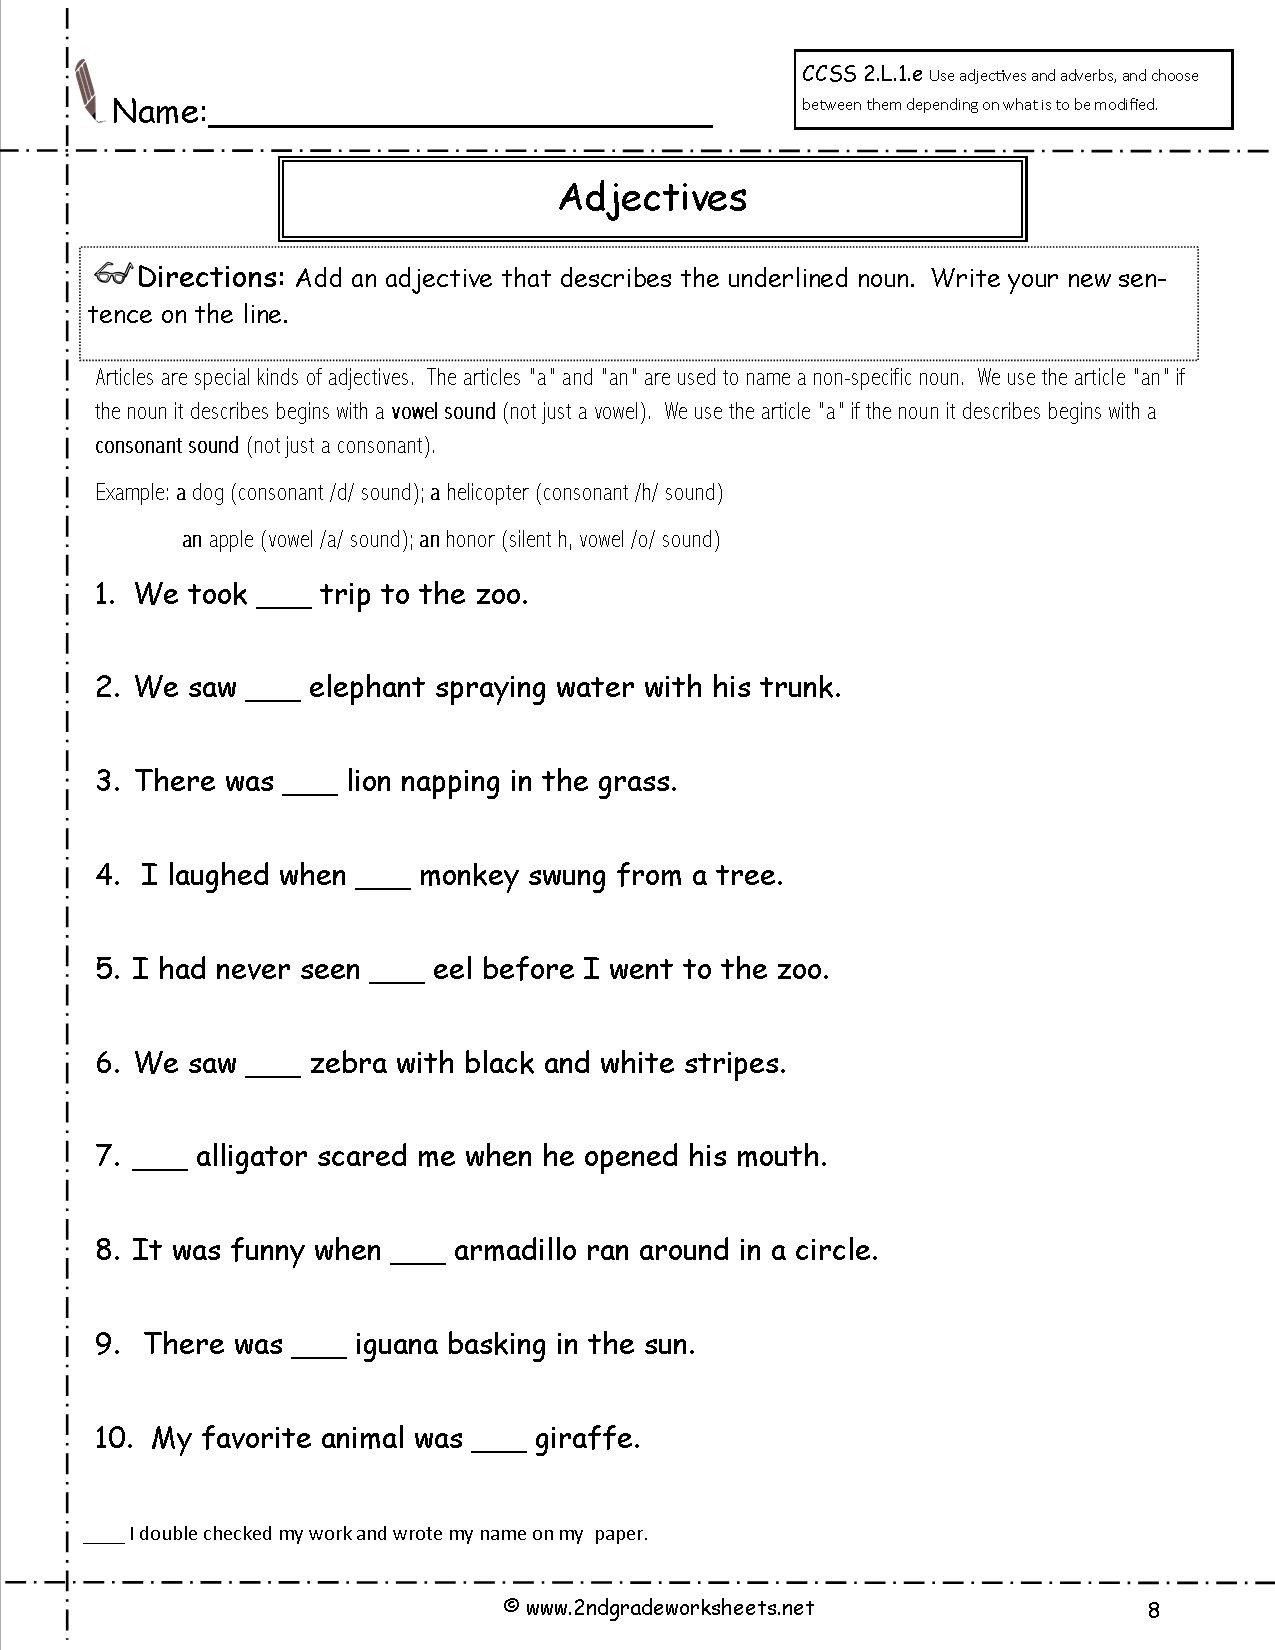 Free Printable Adjective Worksheets Free Printable Adjective Worksheets Free Using Adjectives